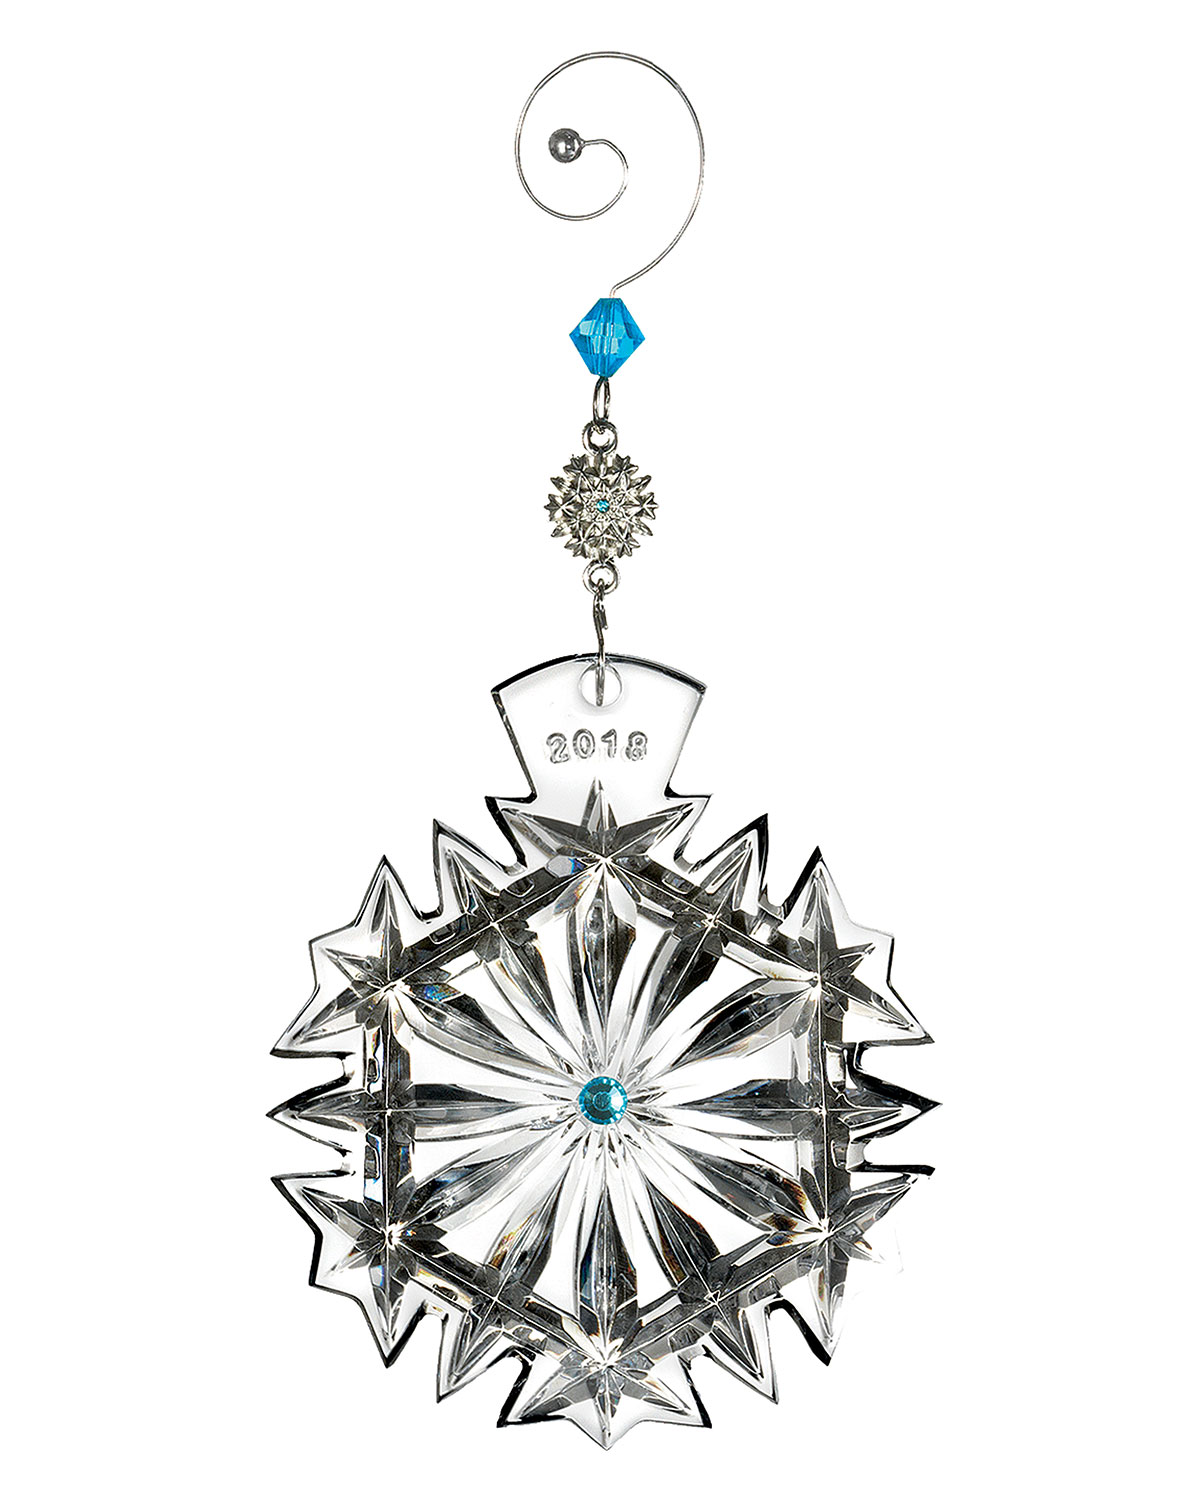 Waterford Crystal 2018 Snowflake Wishes Happiness Christmas Ornament Neiman Marcus